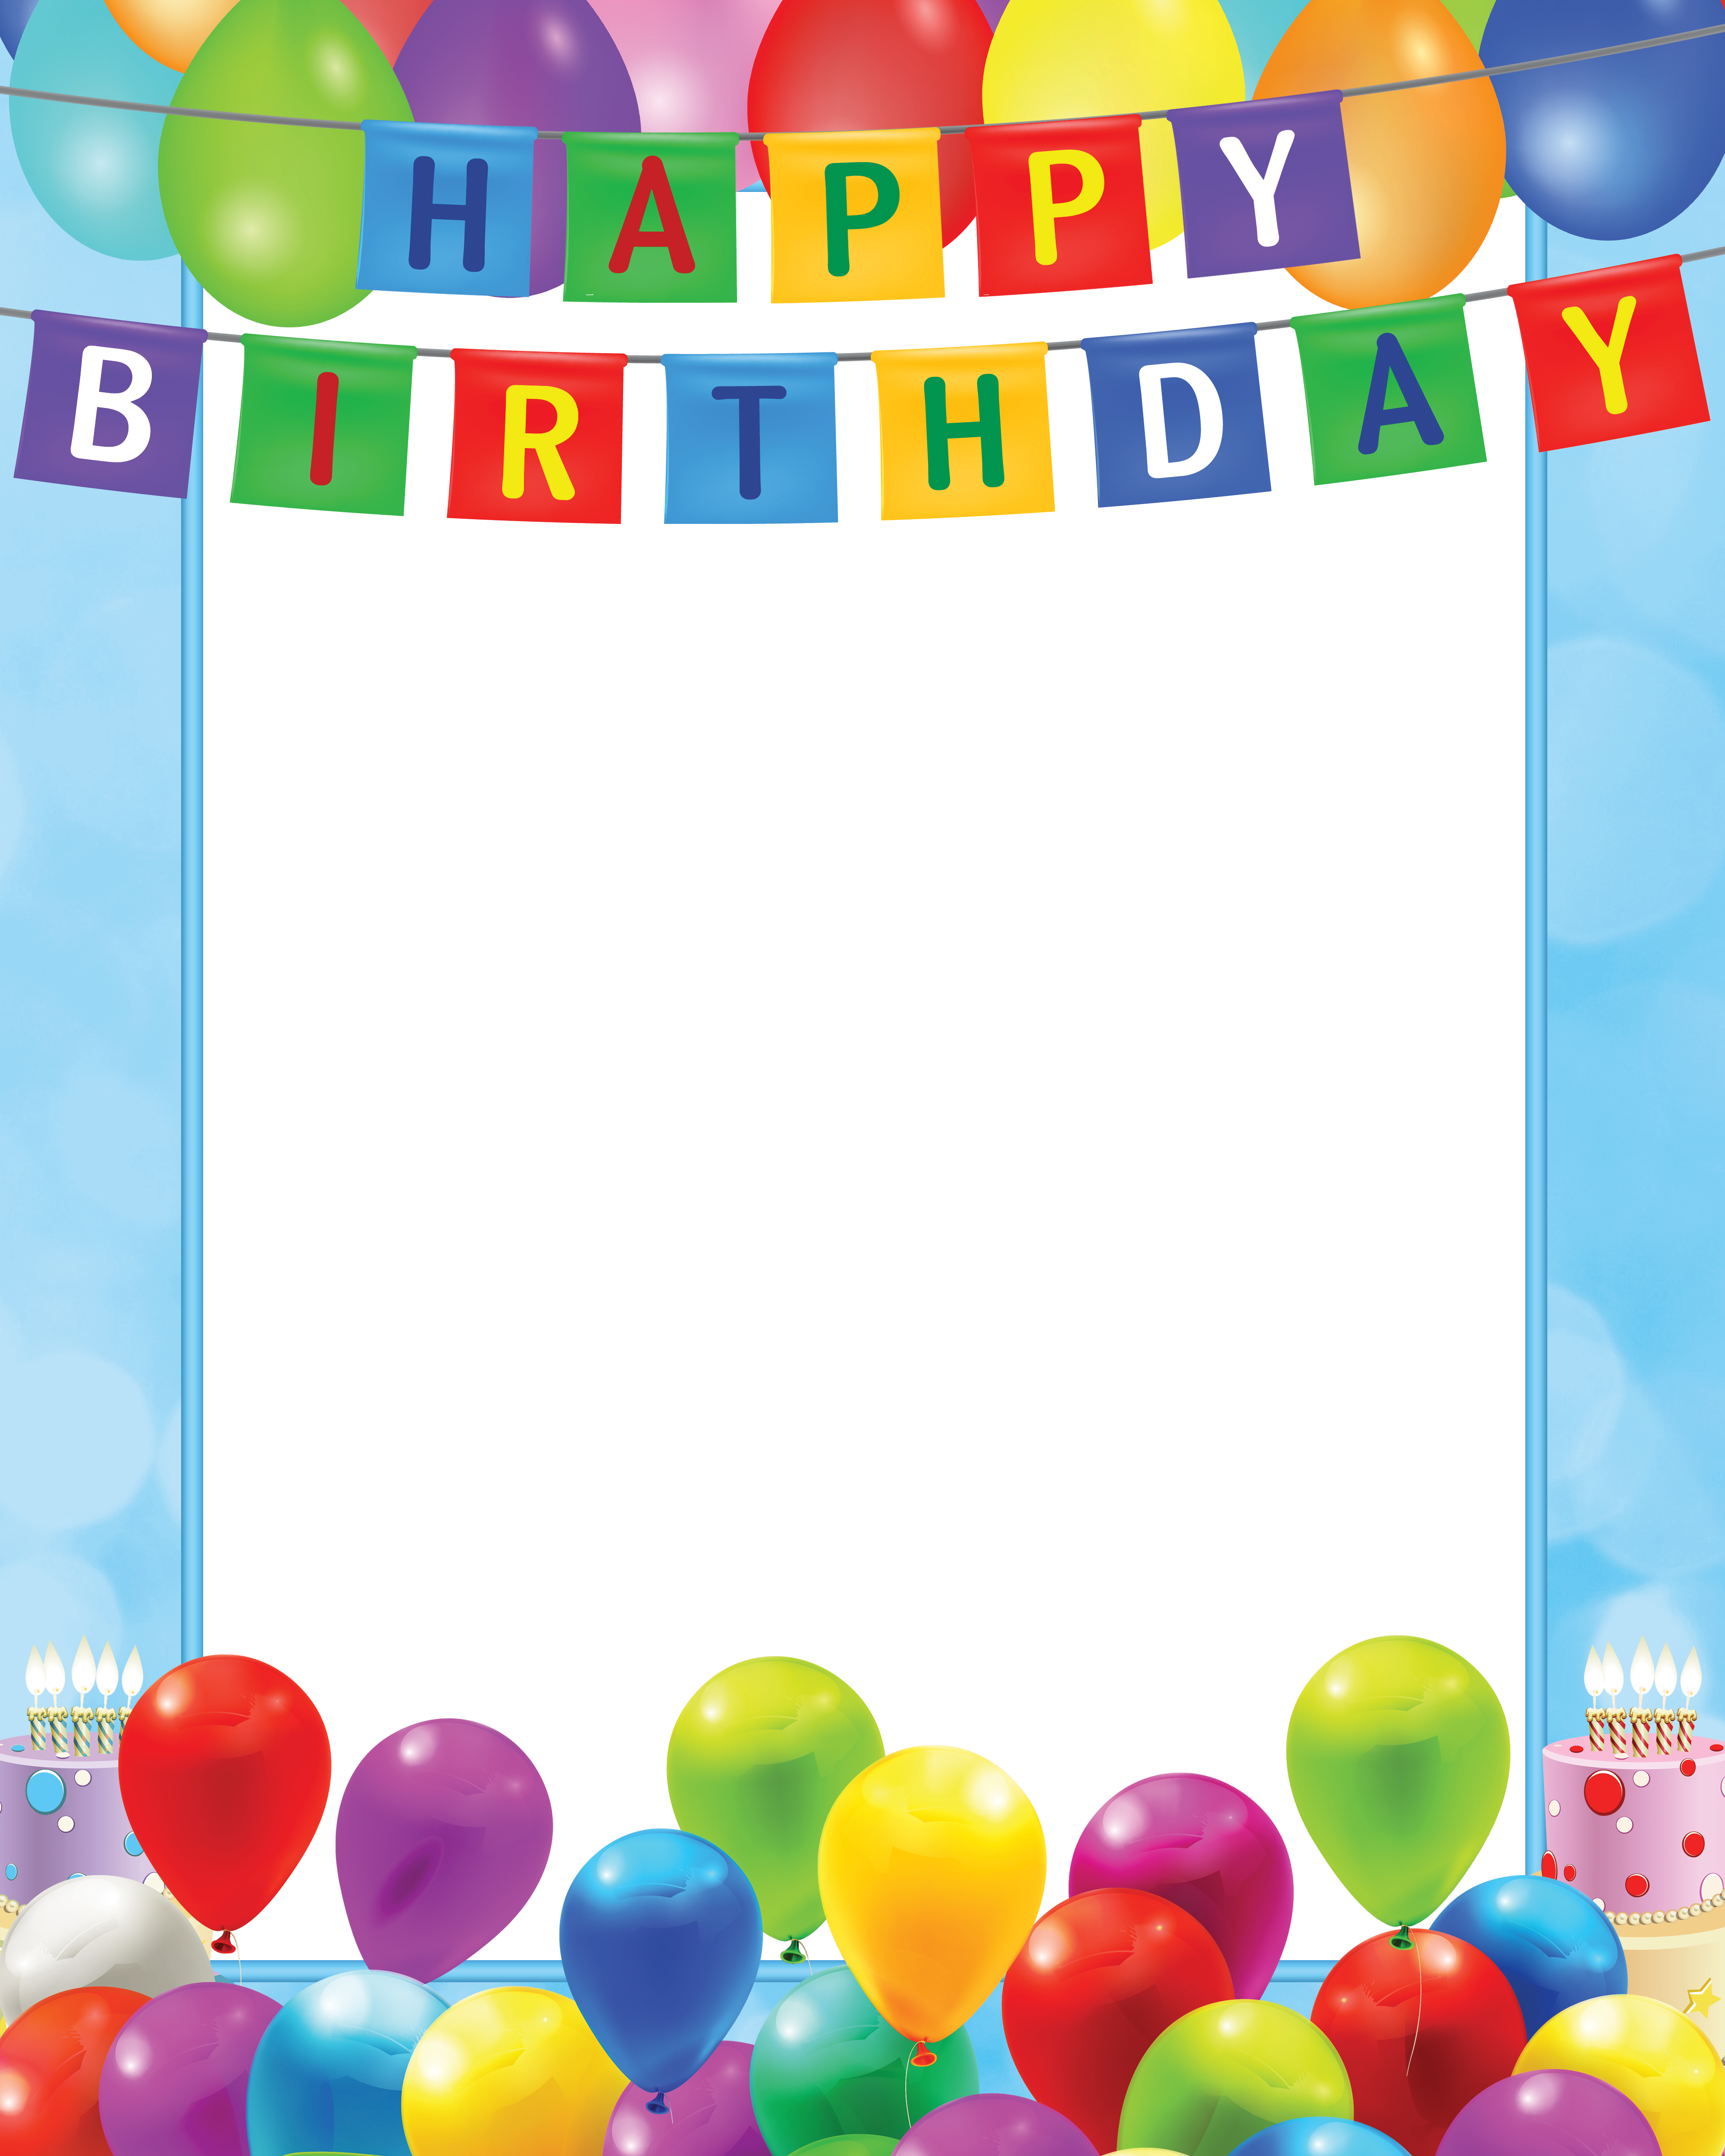 Transparent png blue gallery. Frame clipart happy birthday graphic free download